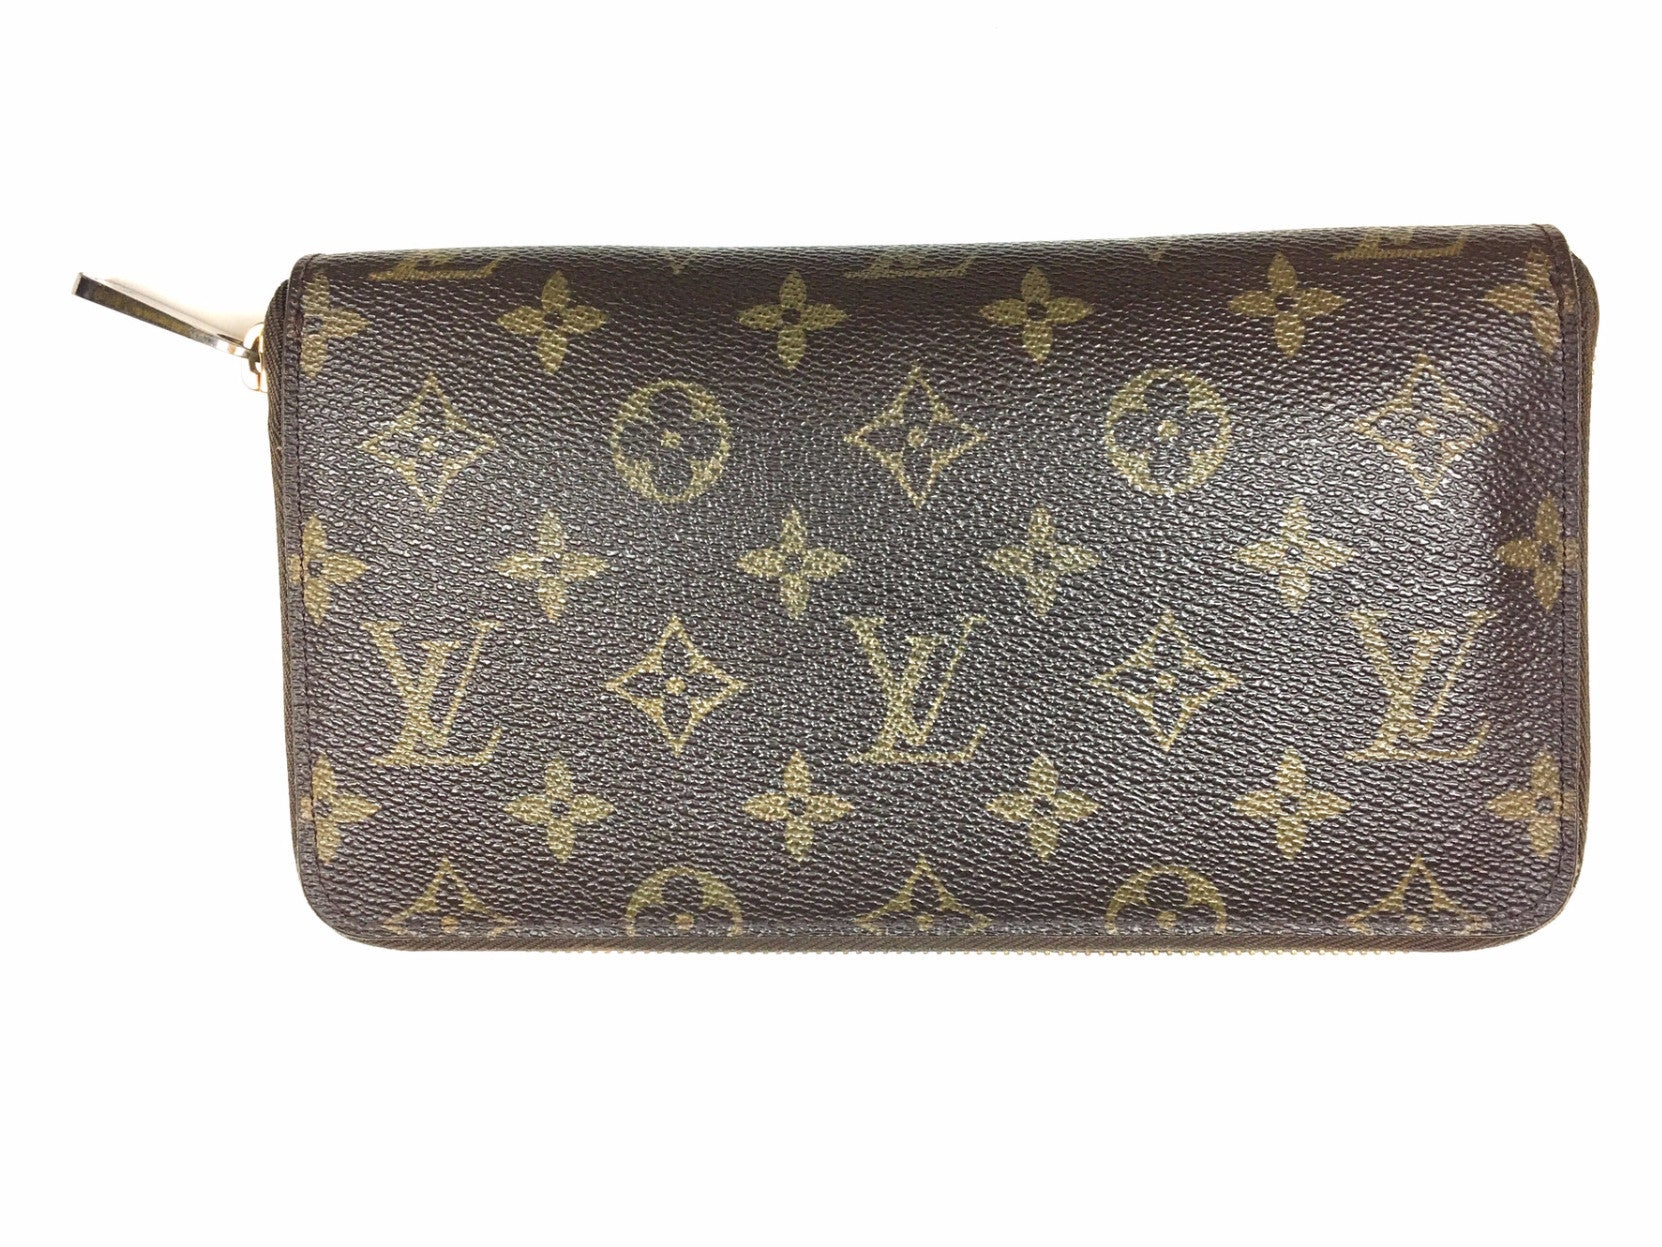 LOUIS VUITTON Monogram Zippy Organizer Travel XL Wallet